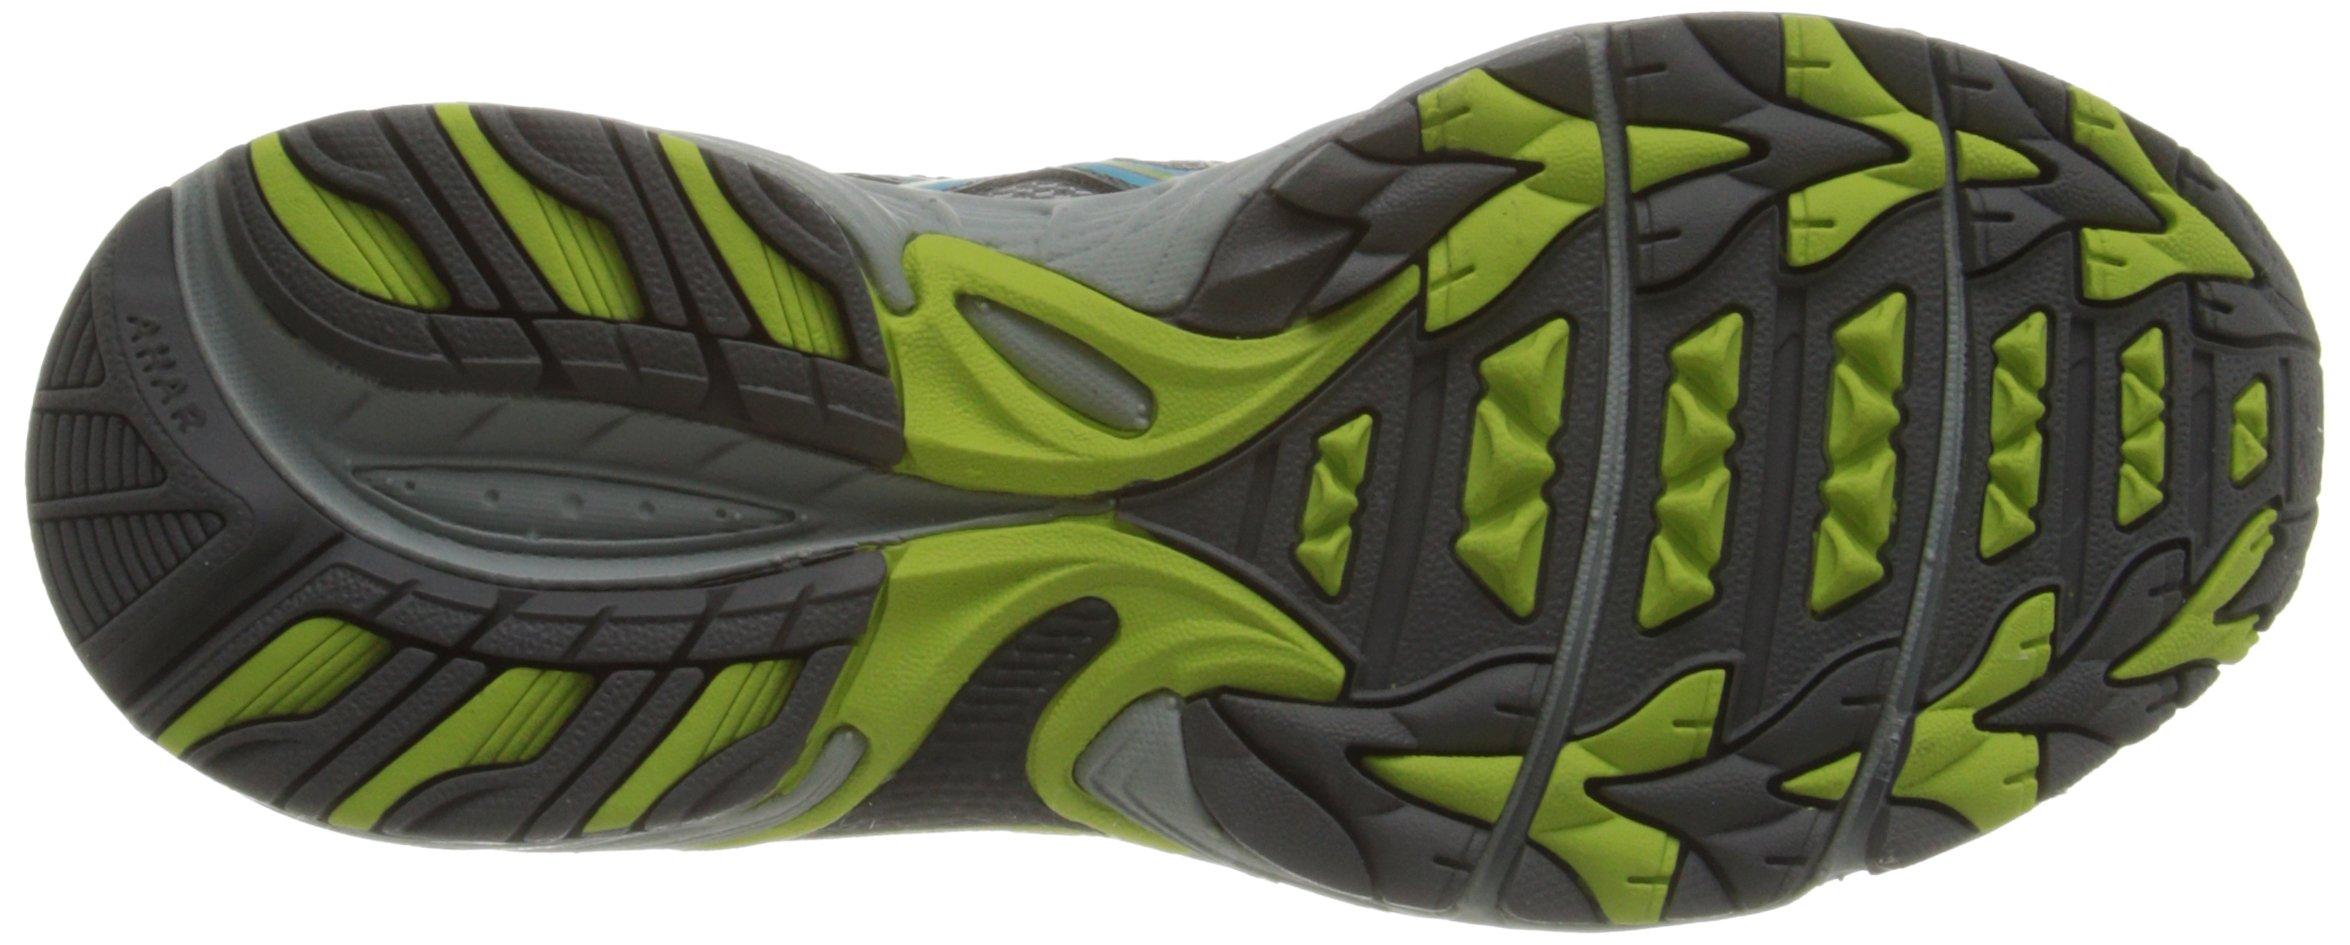 ASICS Women's Gel-Venture 5 Running Shoe, Silver Grey/Turquoise/Lime Punch, 6 M US by ASICS (Image #3)